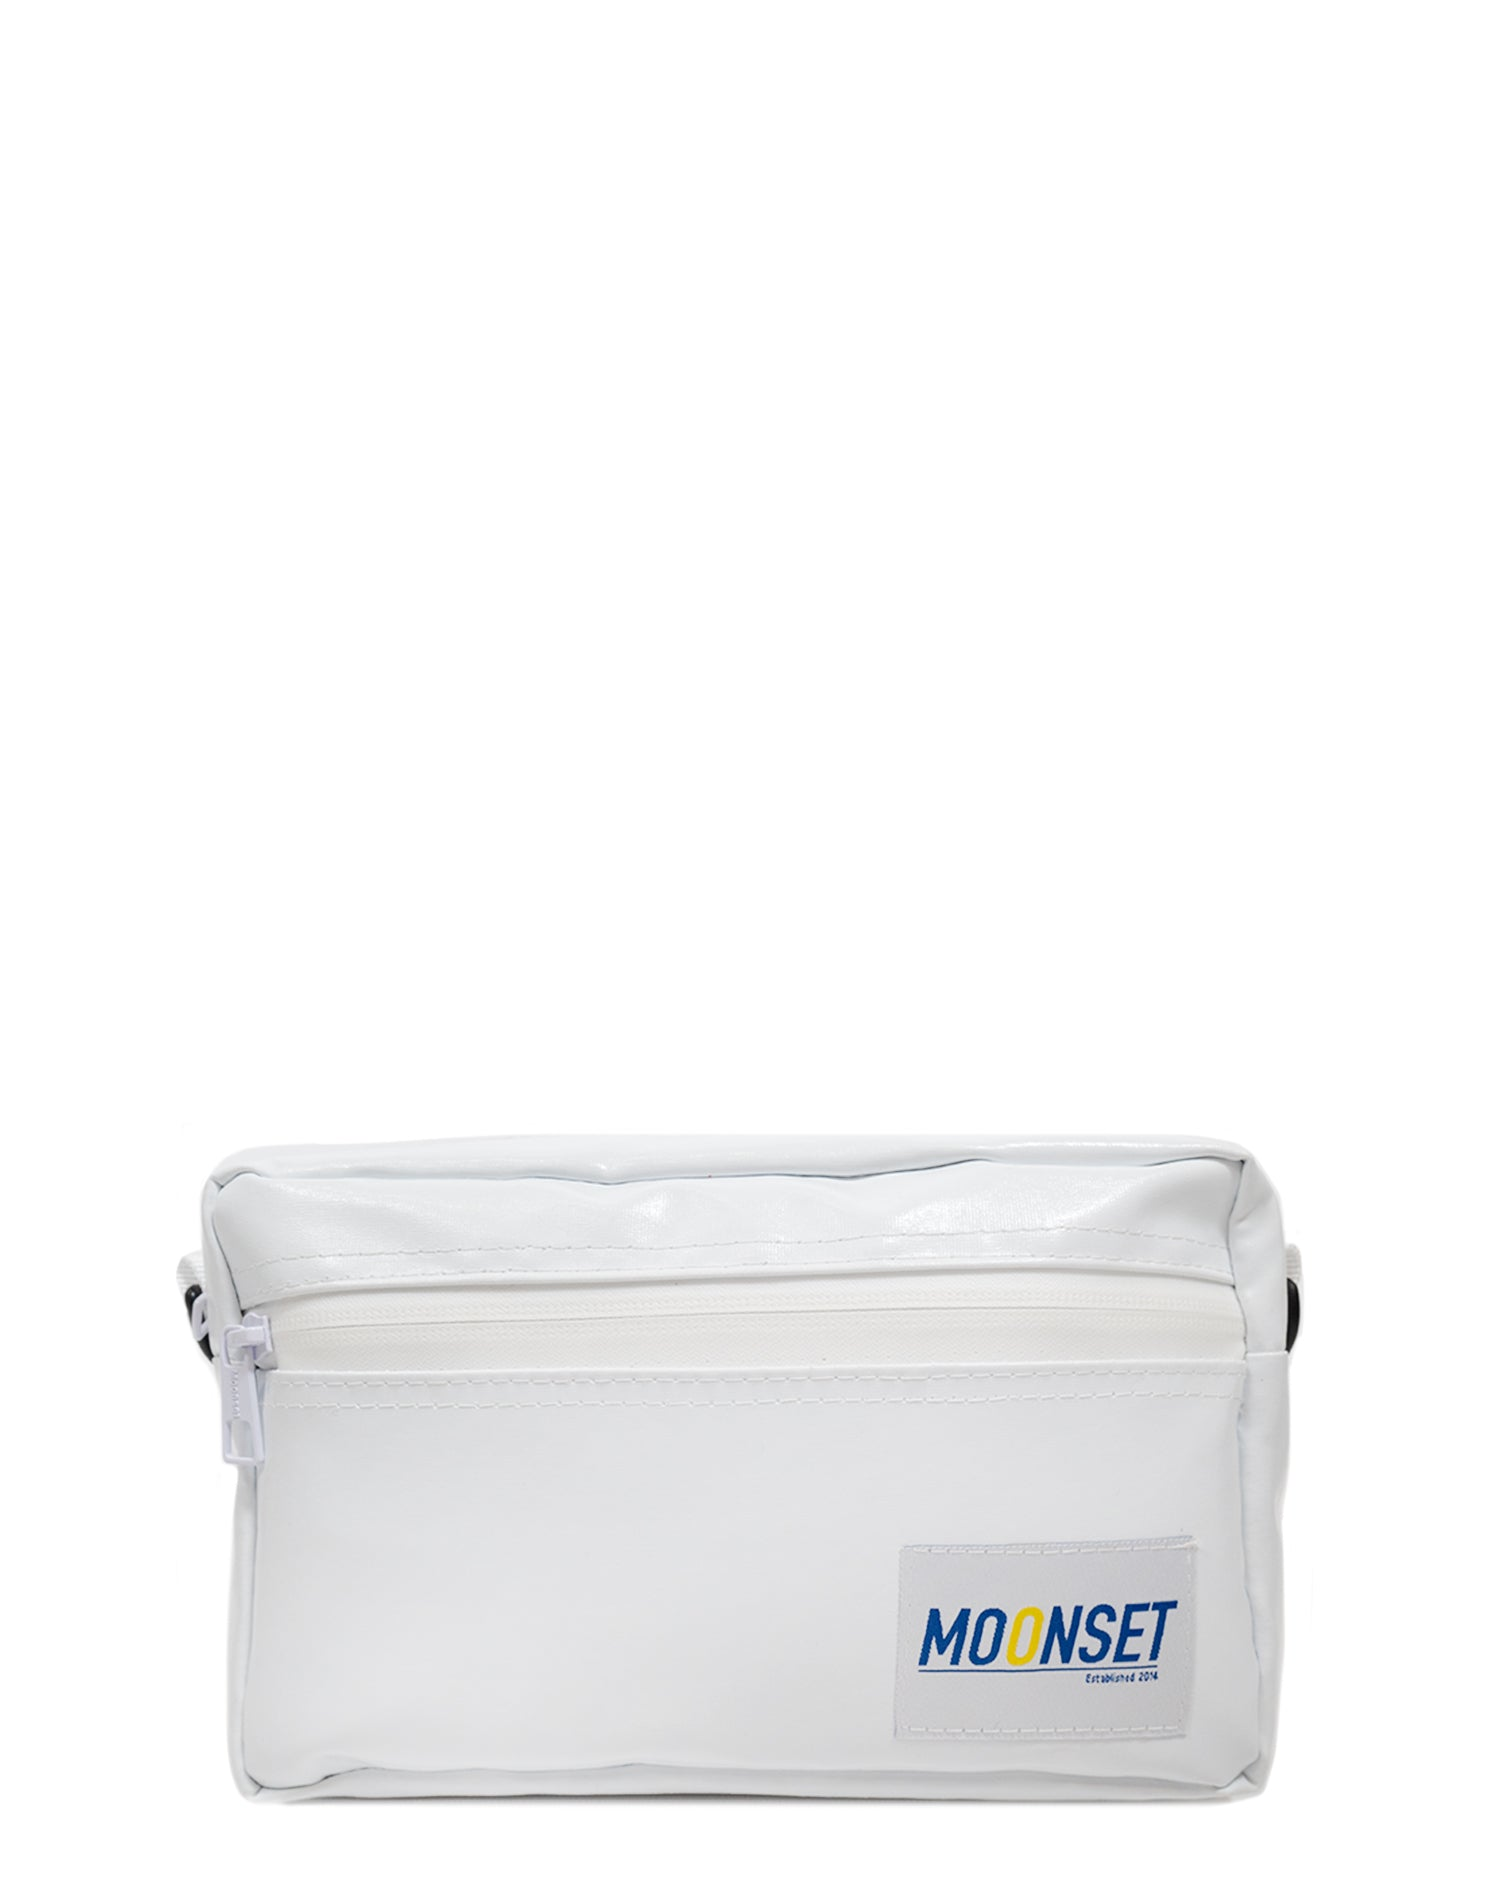 White Waterproof Shoulder Bag.白色防水單肩斜挎袋